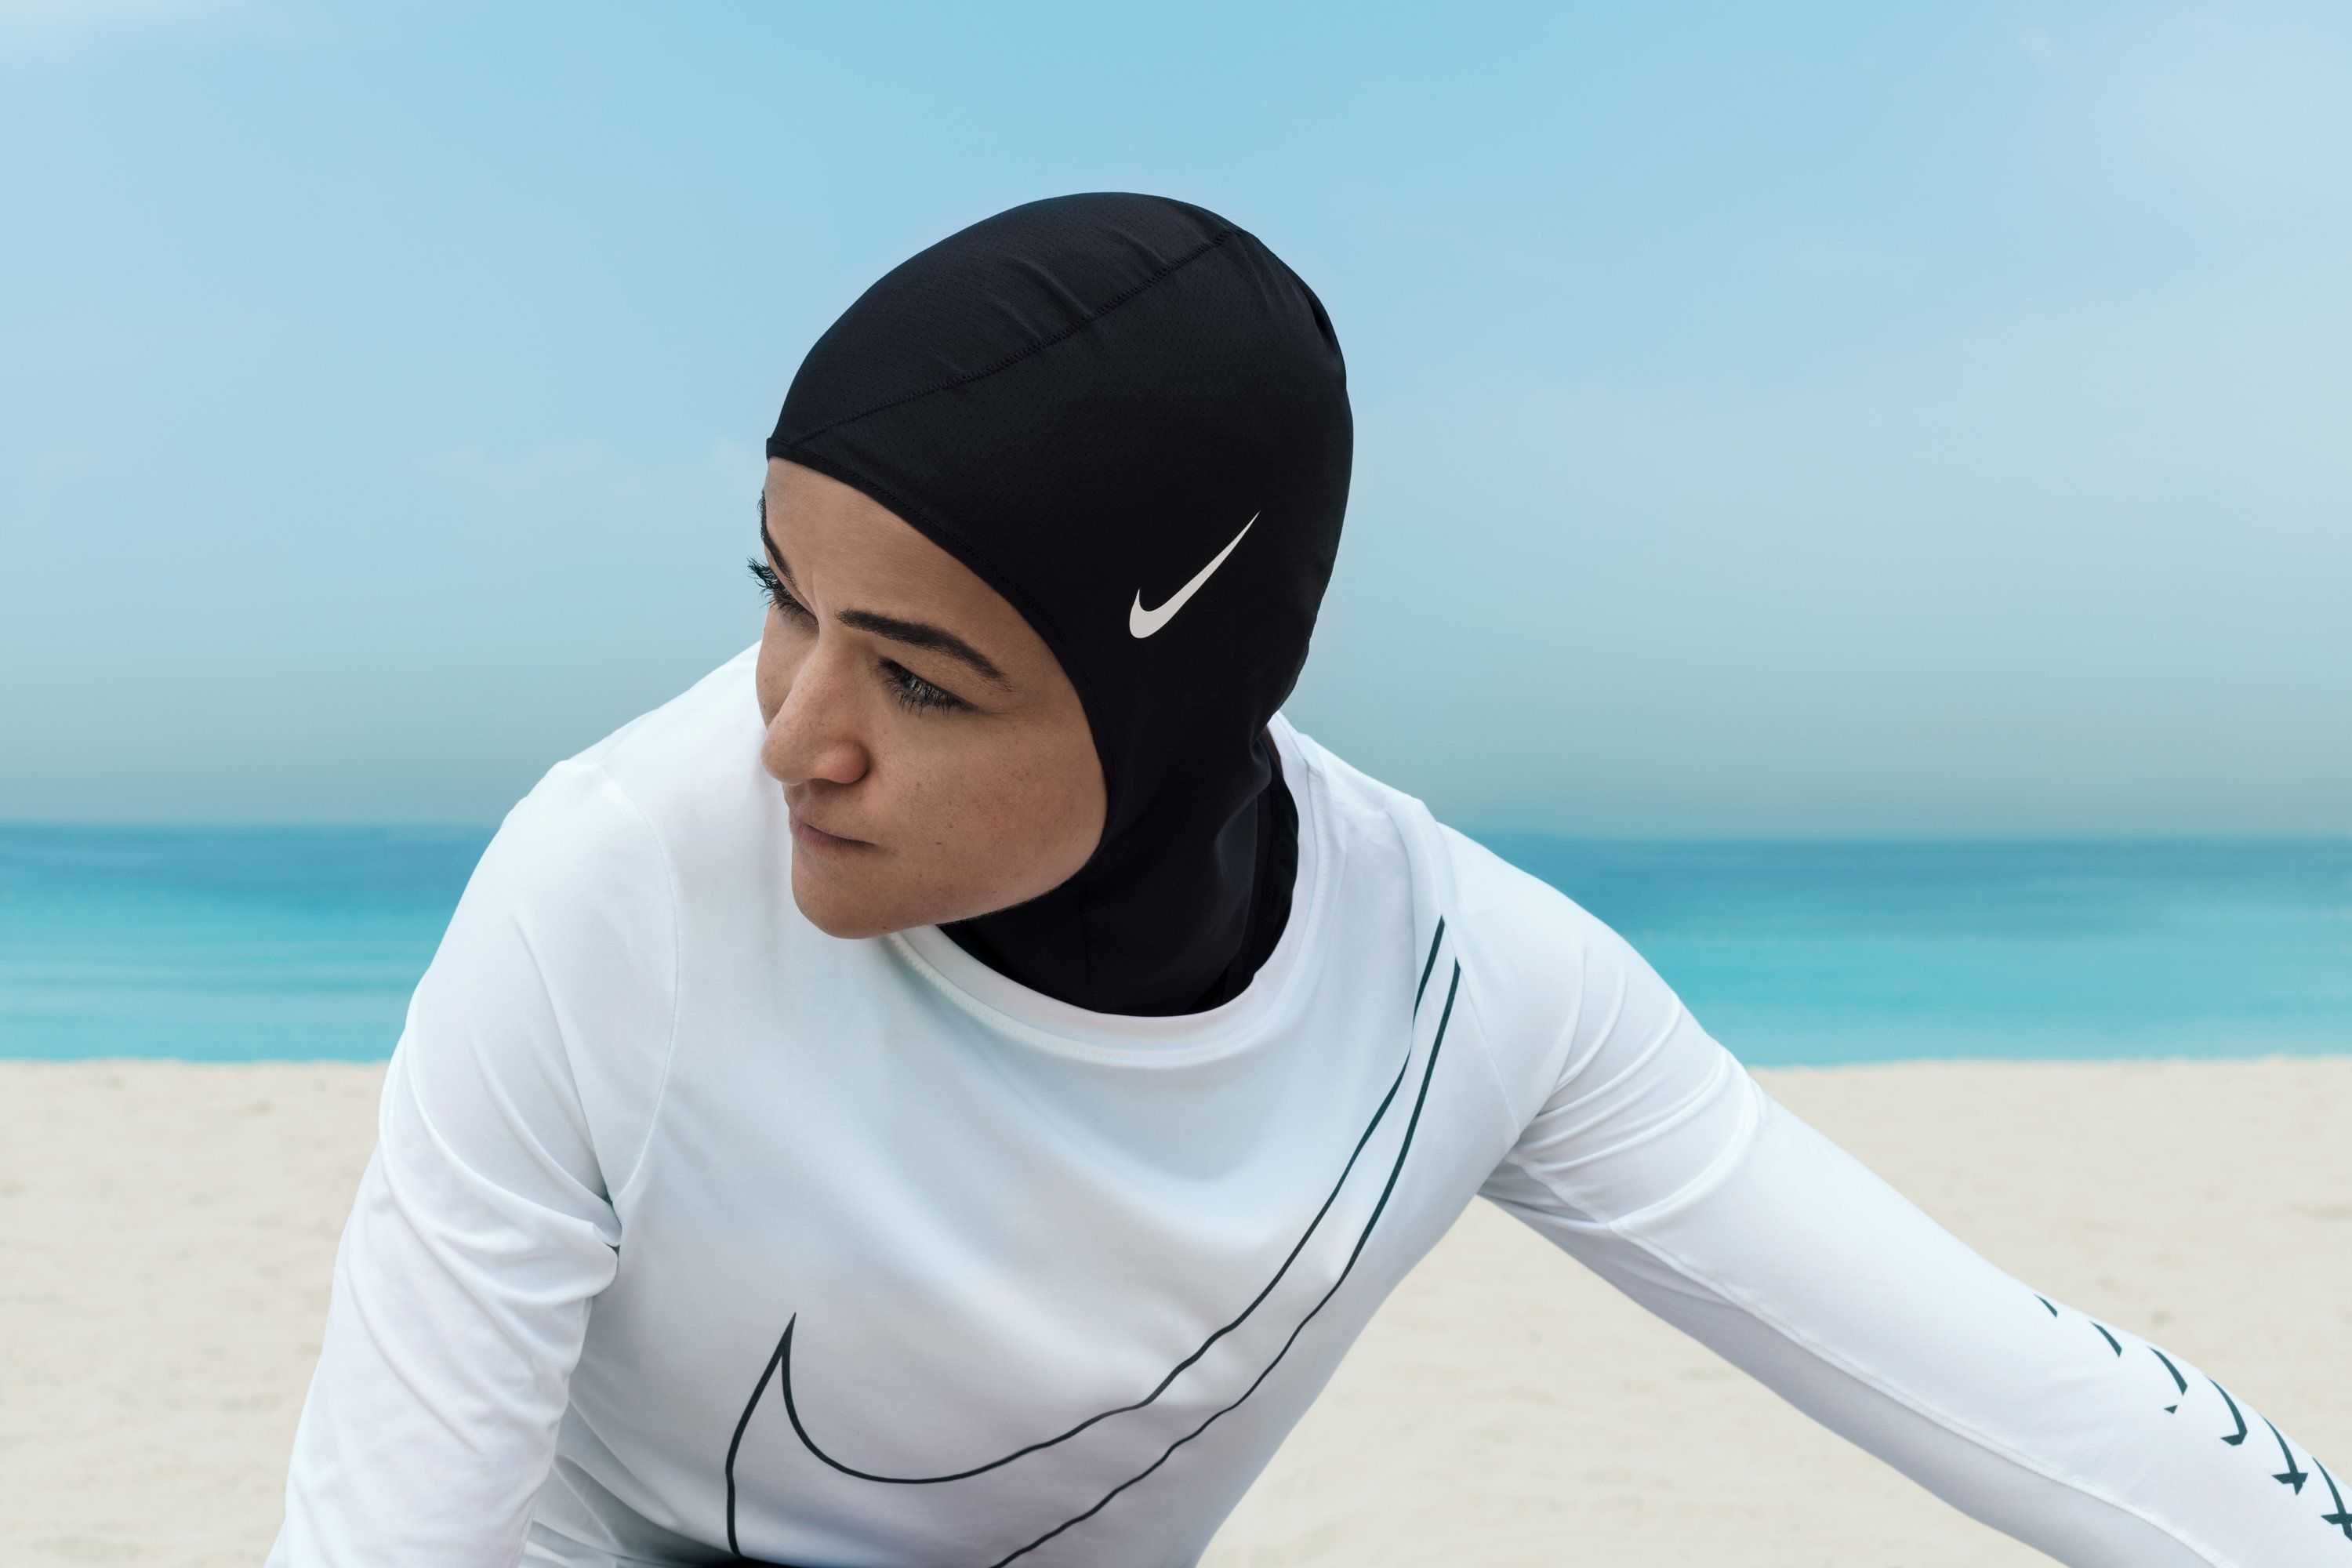 Nike Gets Inclusive With 'Pro Hijab' For Female Muslim